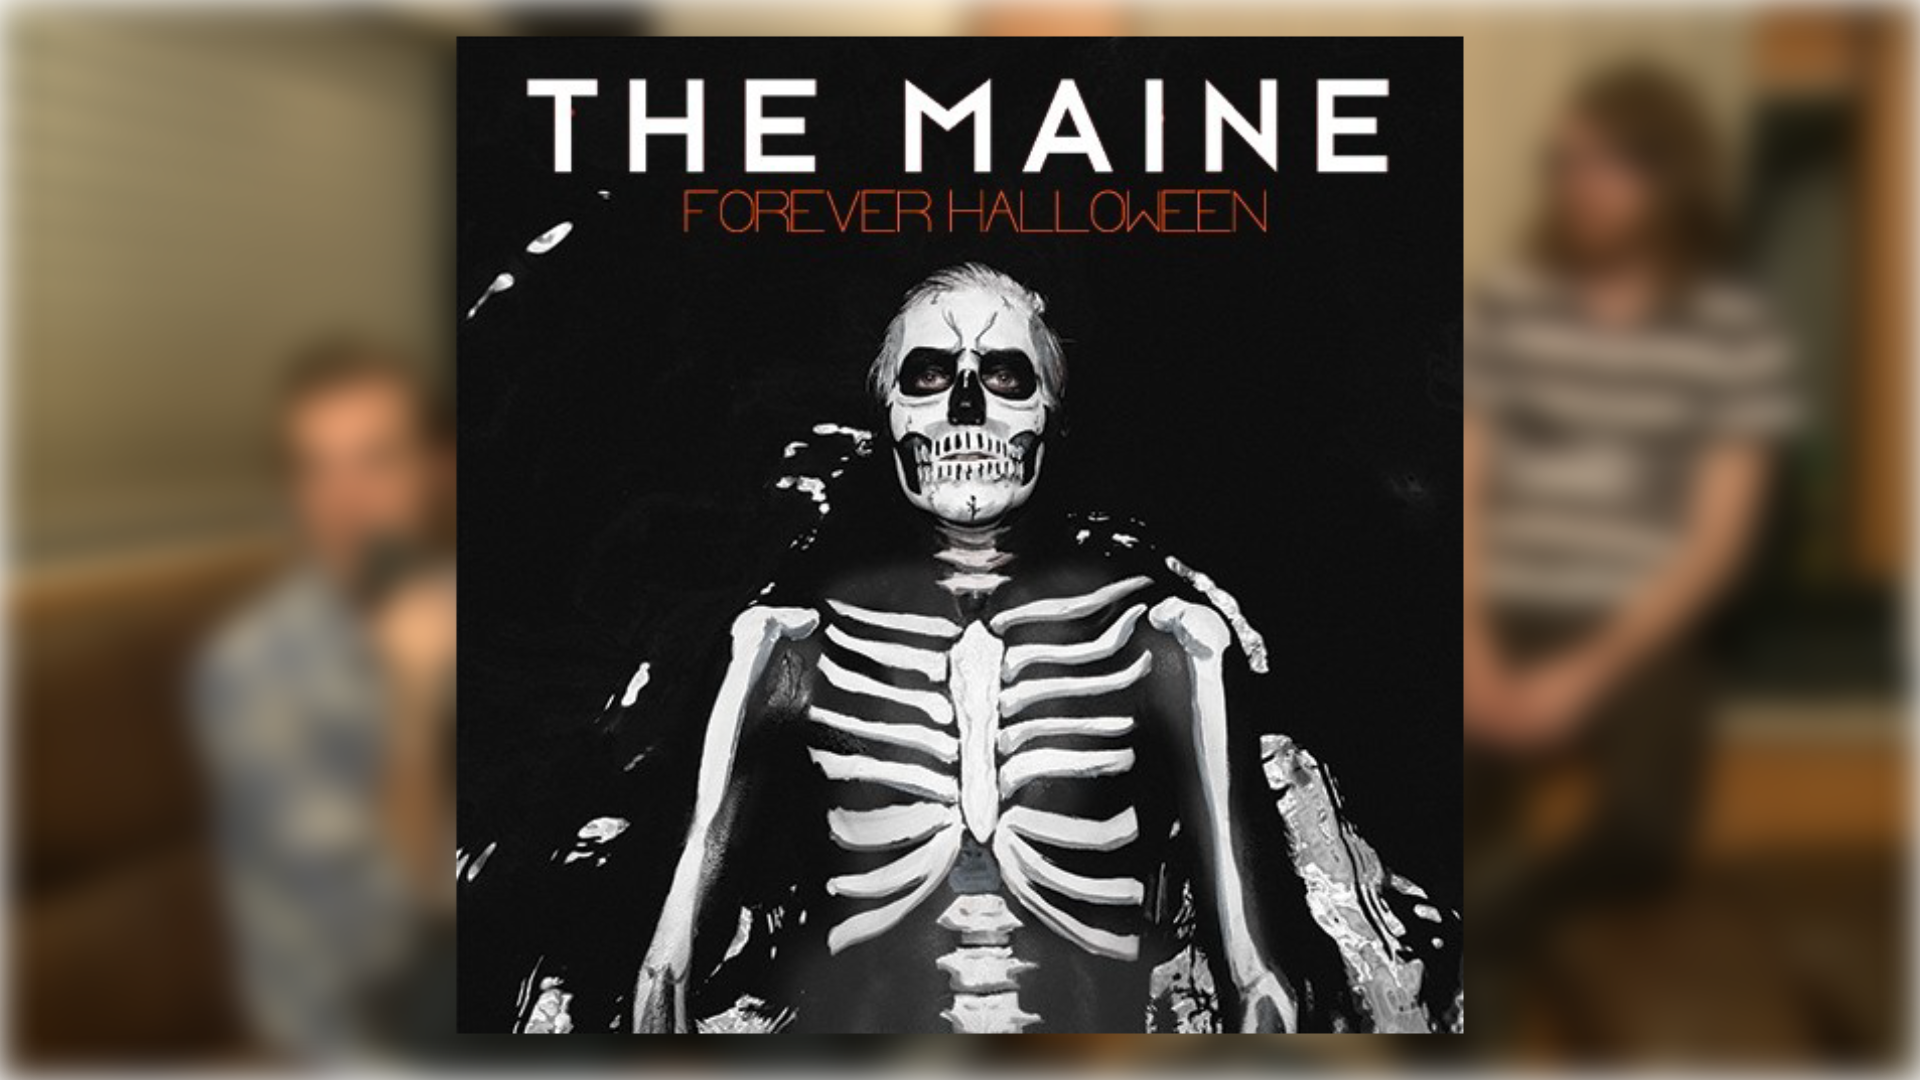 the maine declares it forever halloween | lifeminute.tv